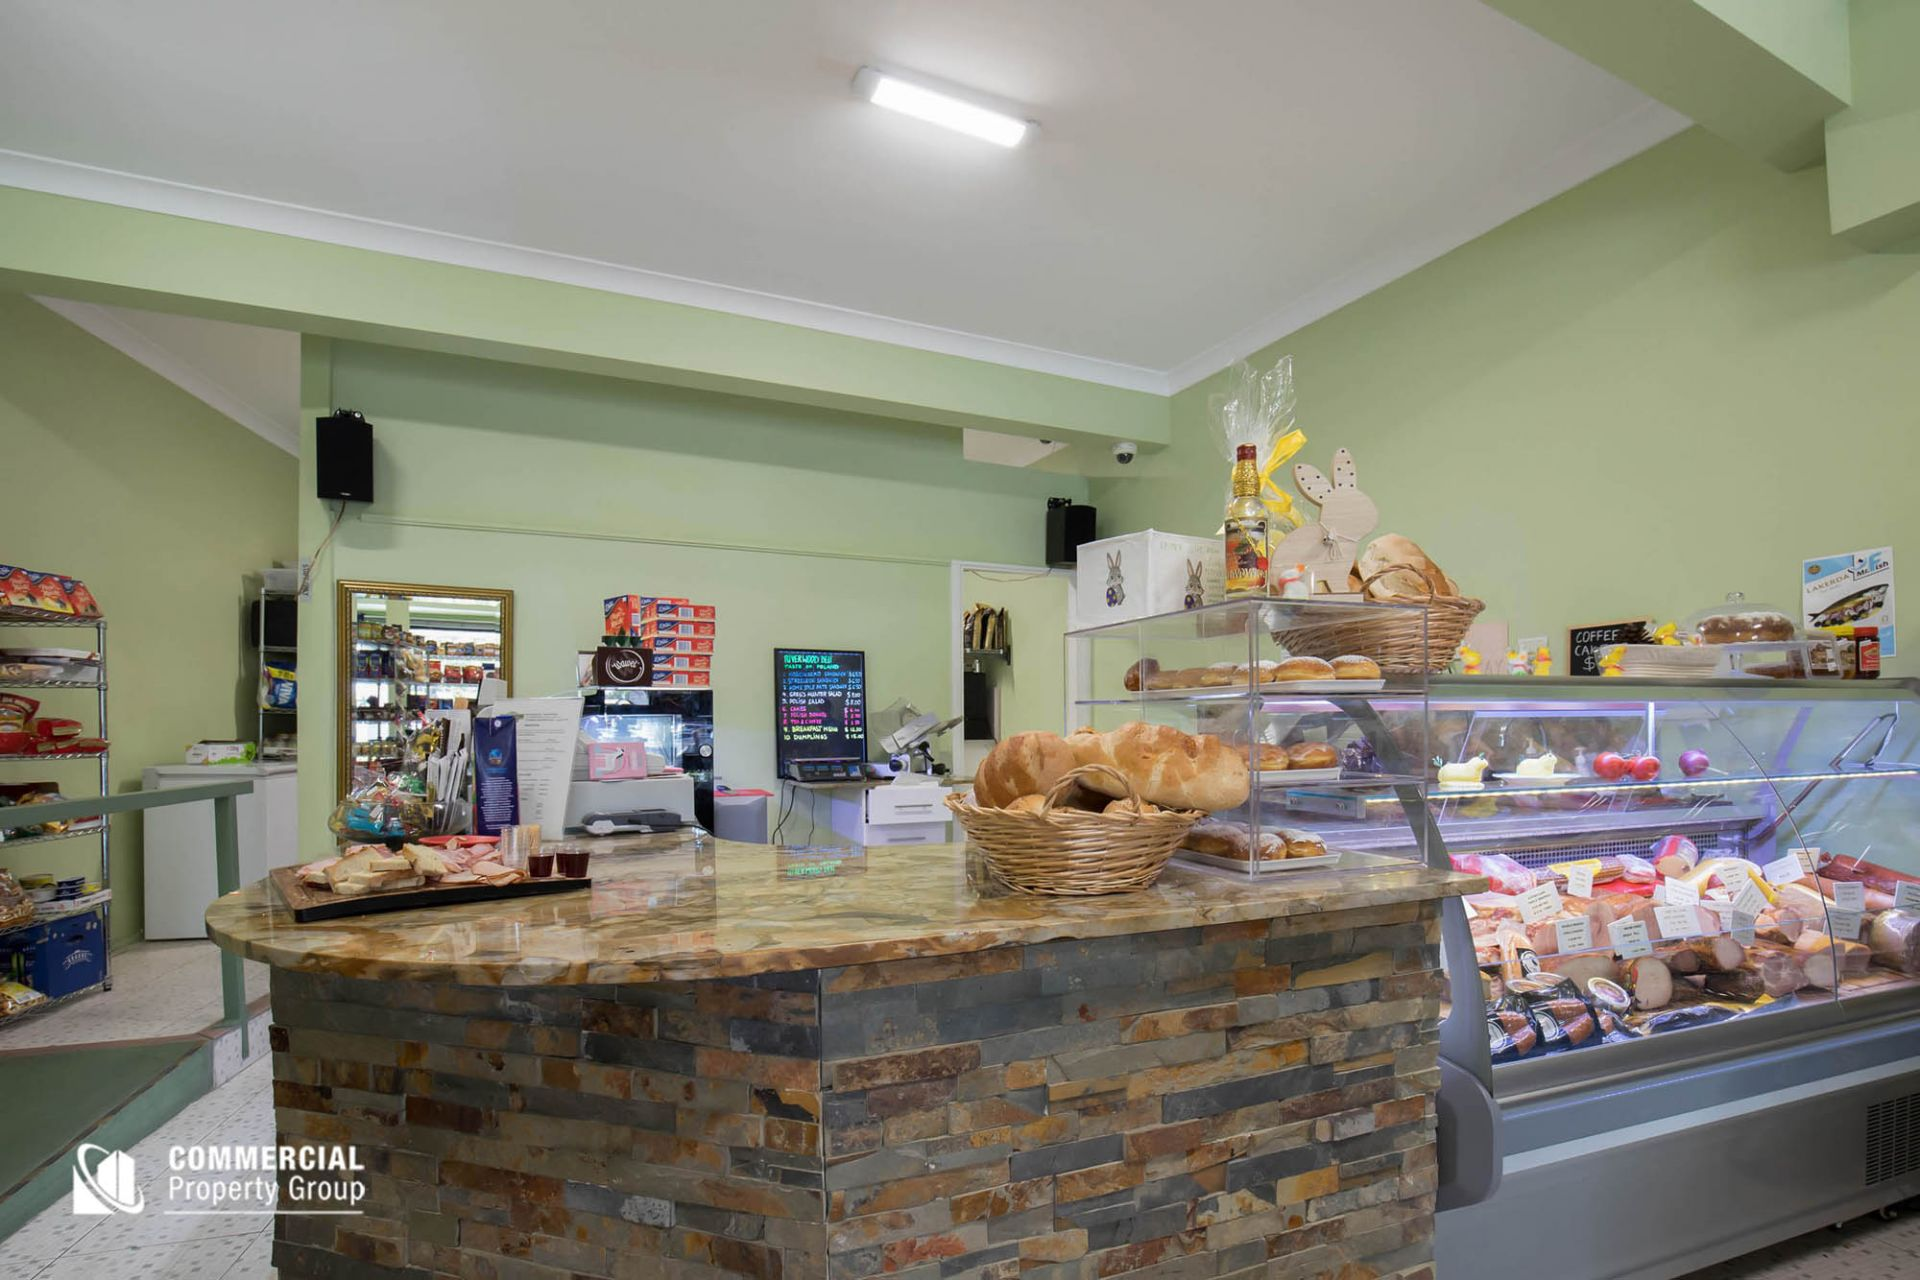 2 SHOPS & 2 RESIDENCES - ALL LEASED OUT